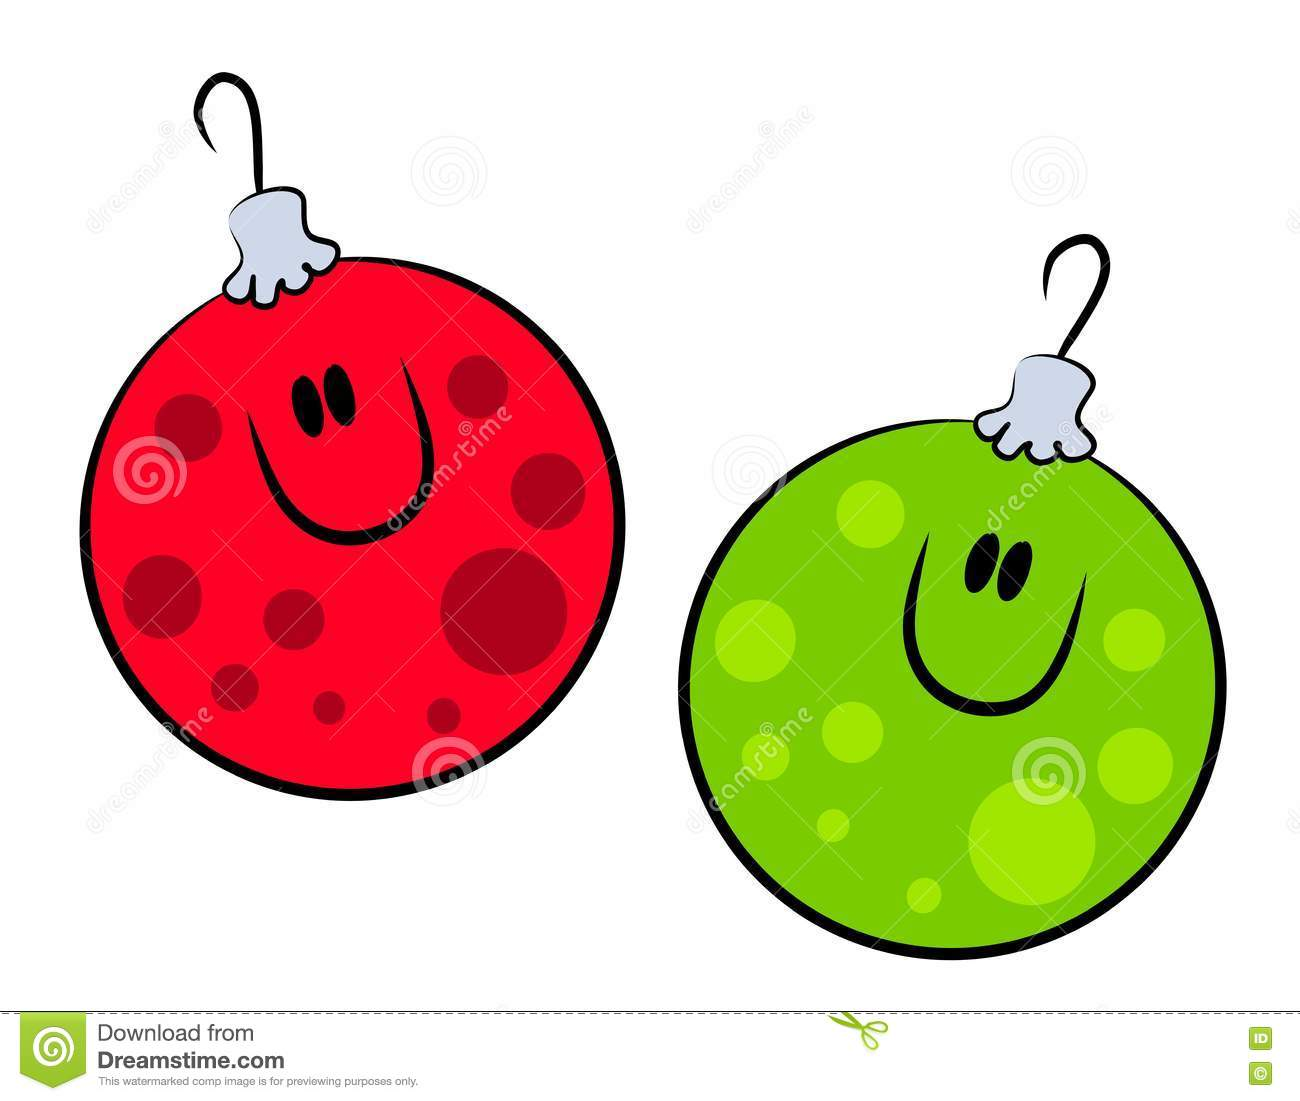 Cartoon Smiling Xmas Ornaments Picture Image 3551038